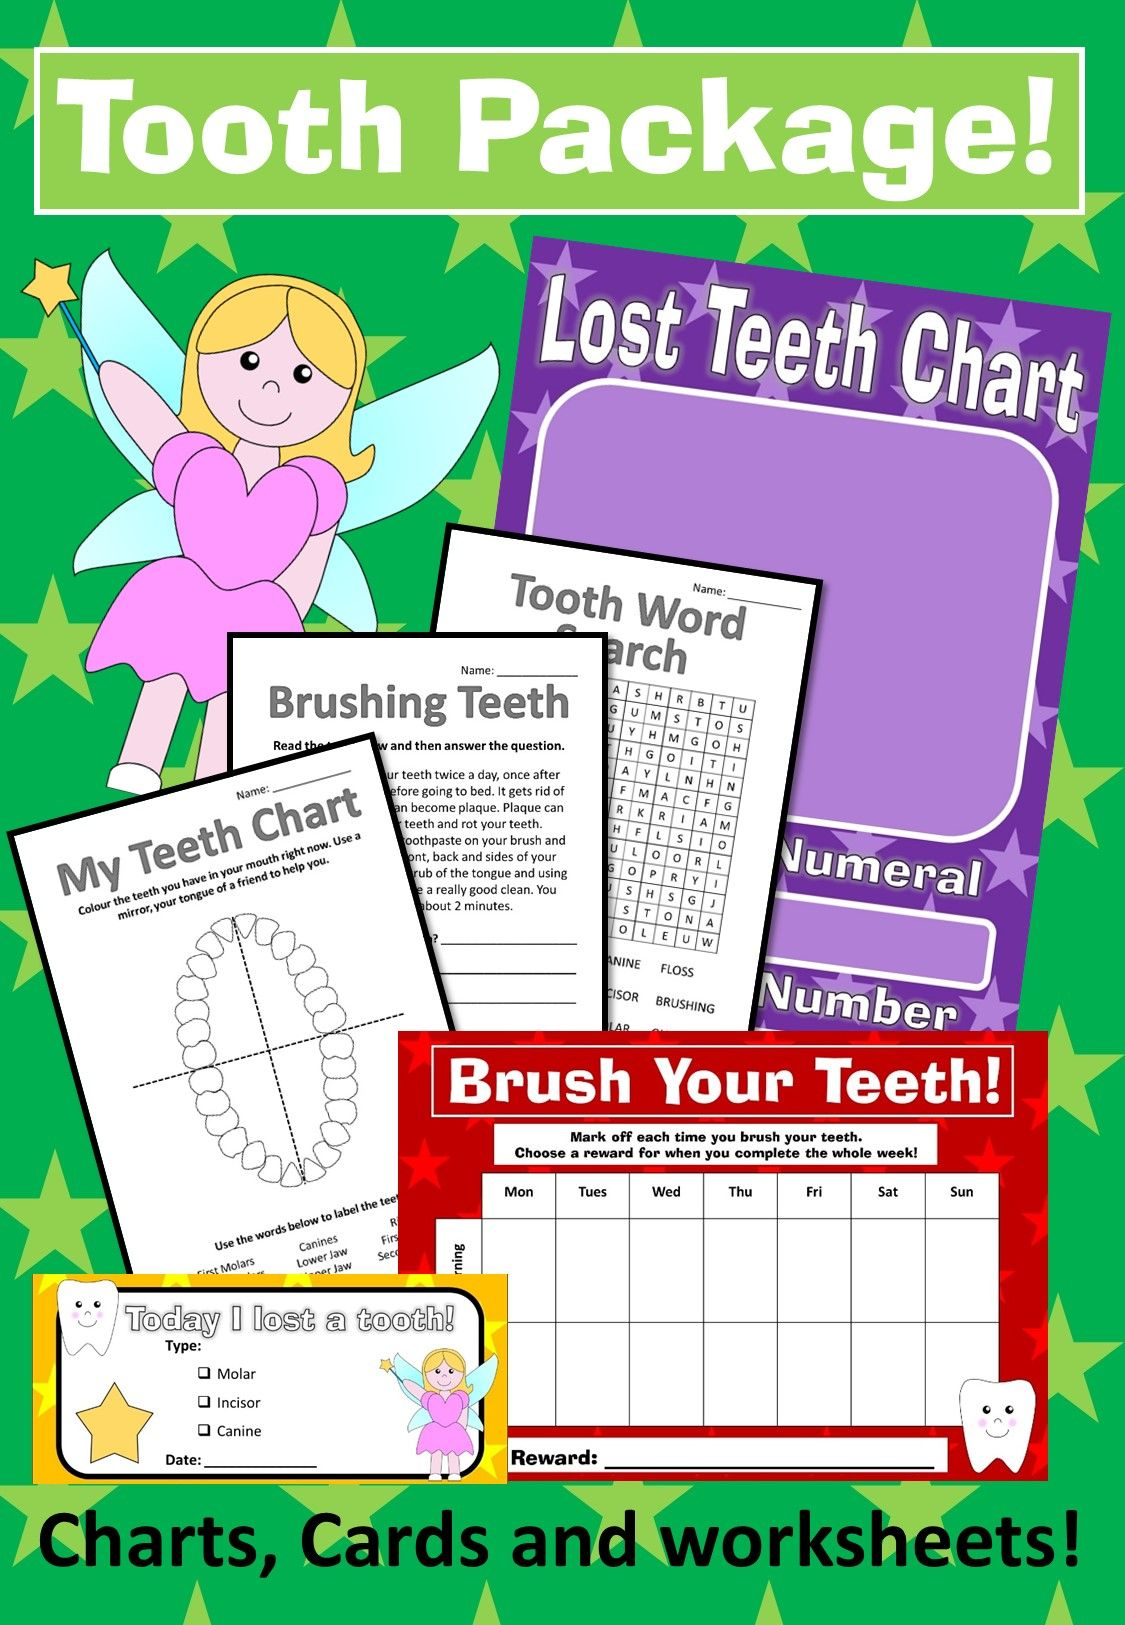 Tooth Package Lost Teeth Chart Brushing Teeth Chart